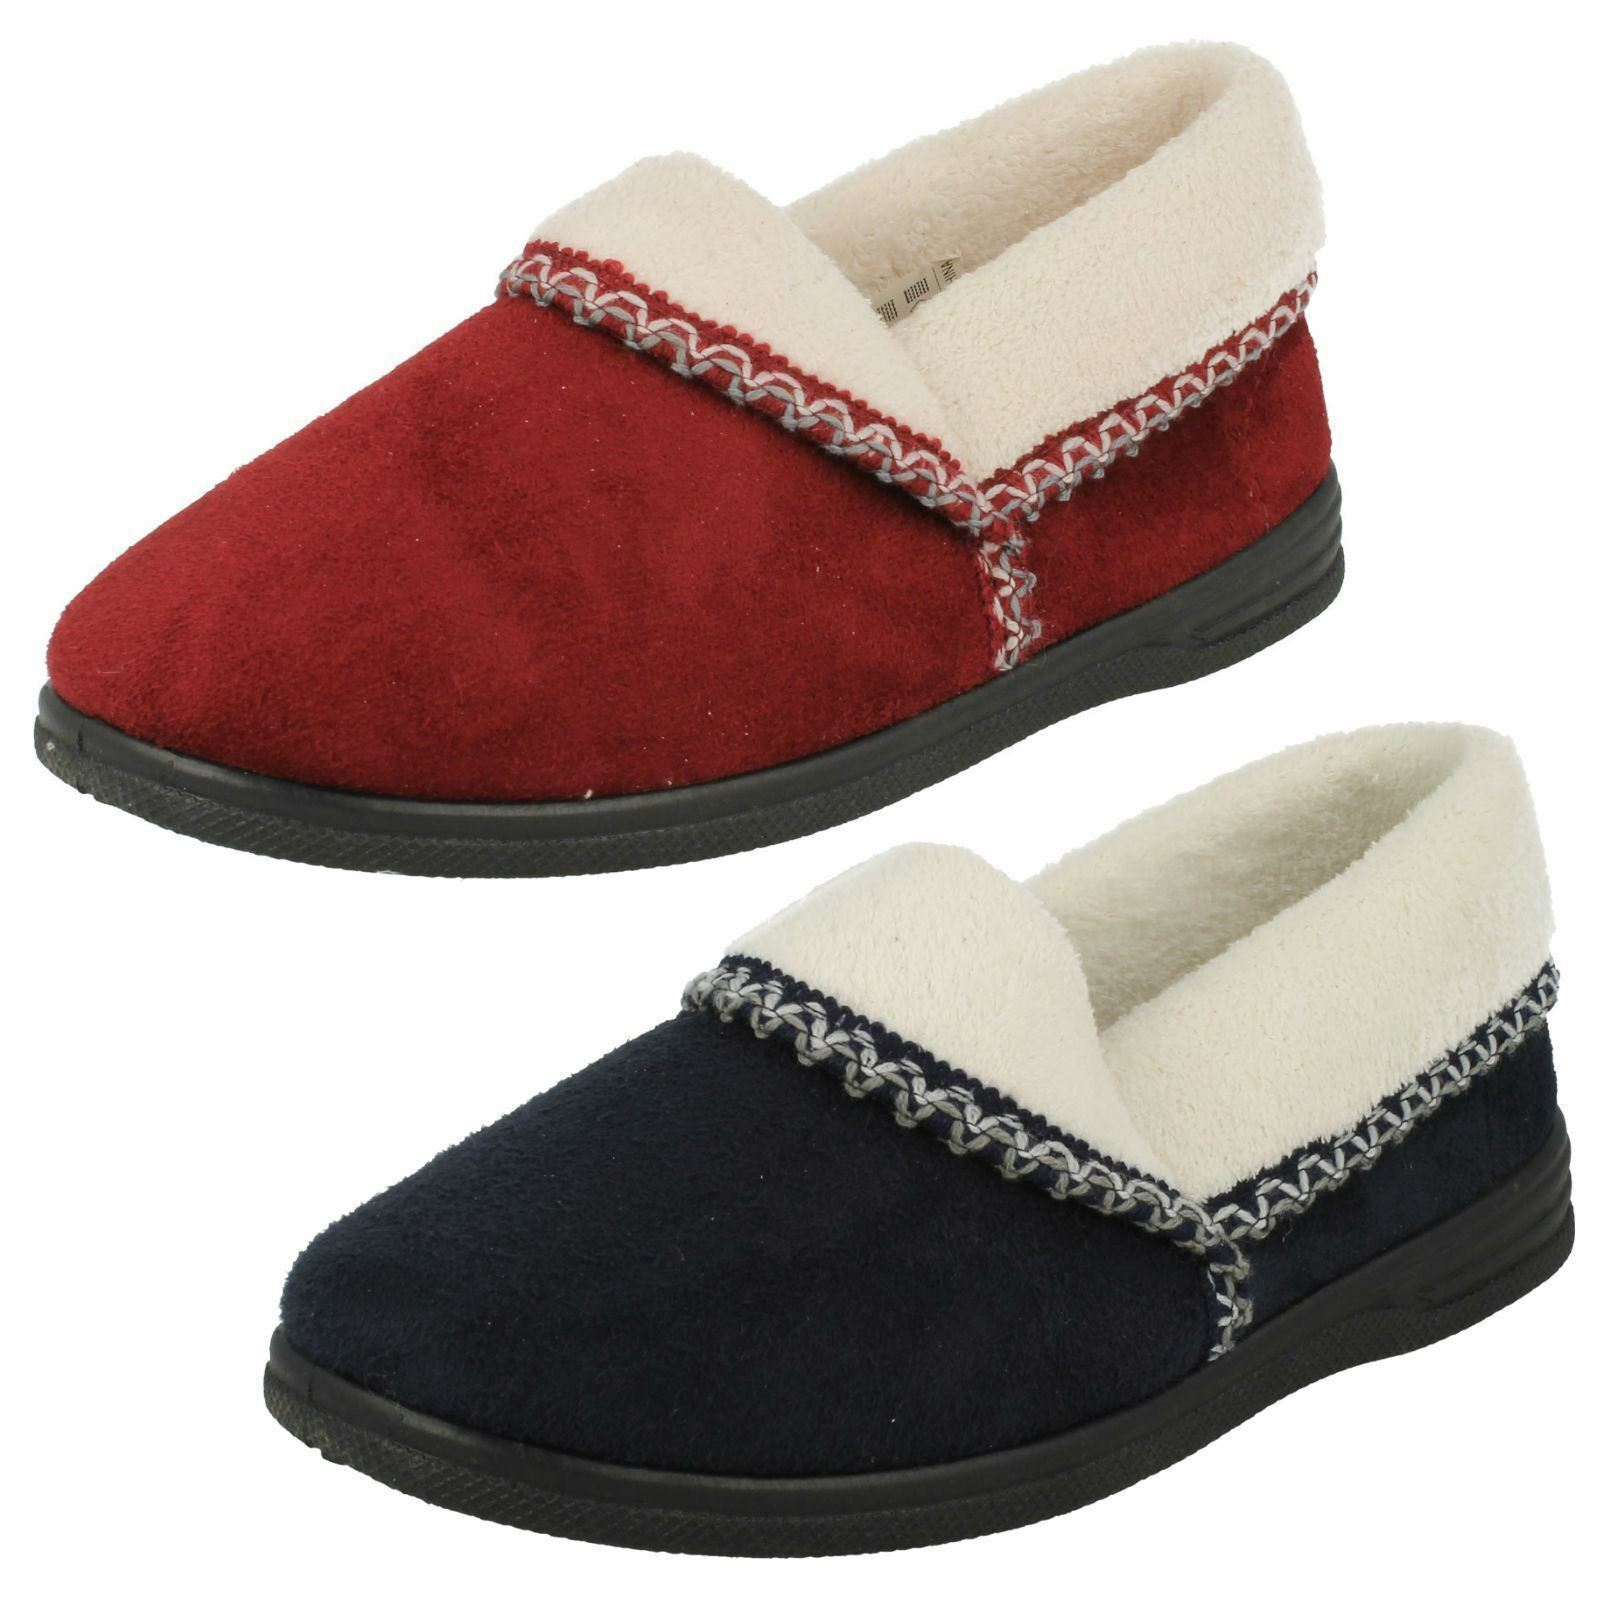 sale Ladies Ila Wine/Navy Textile Slippers by Sandpiper retail 12.99